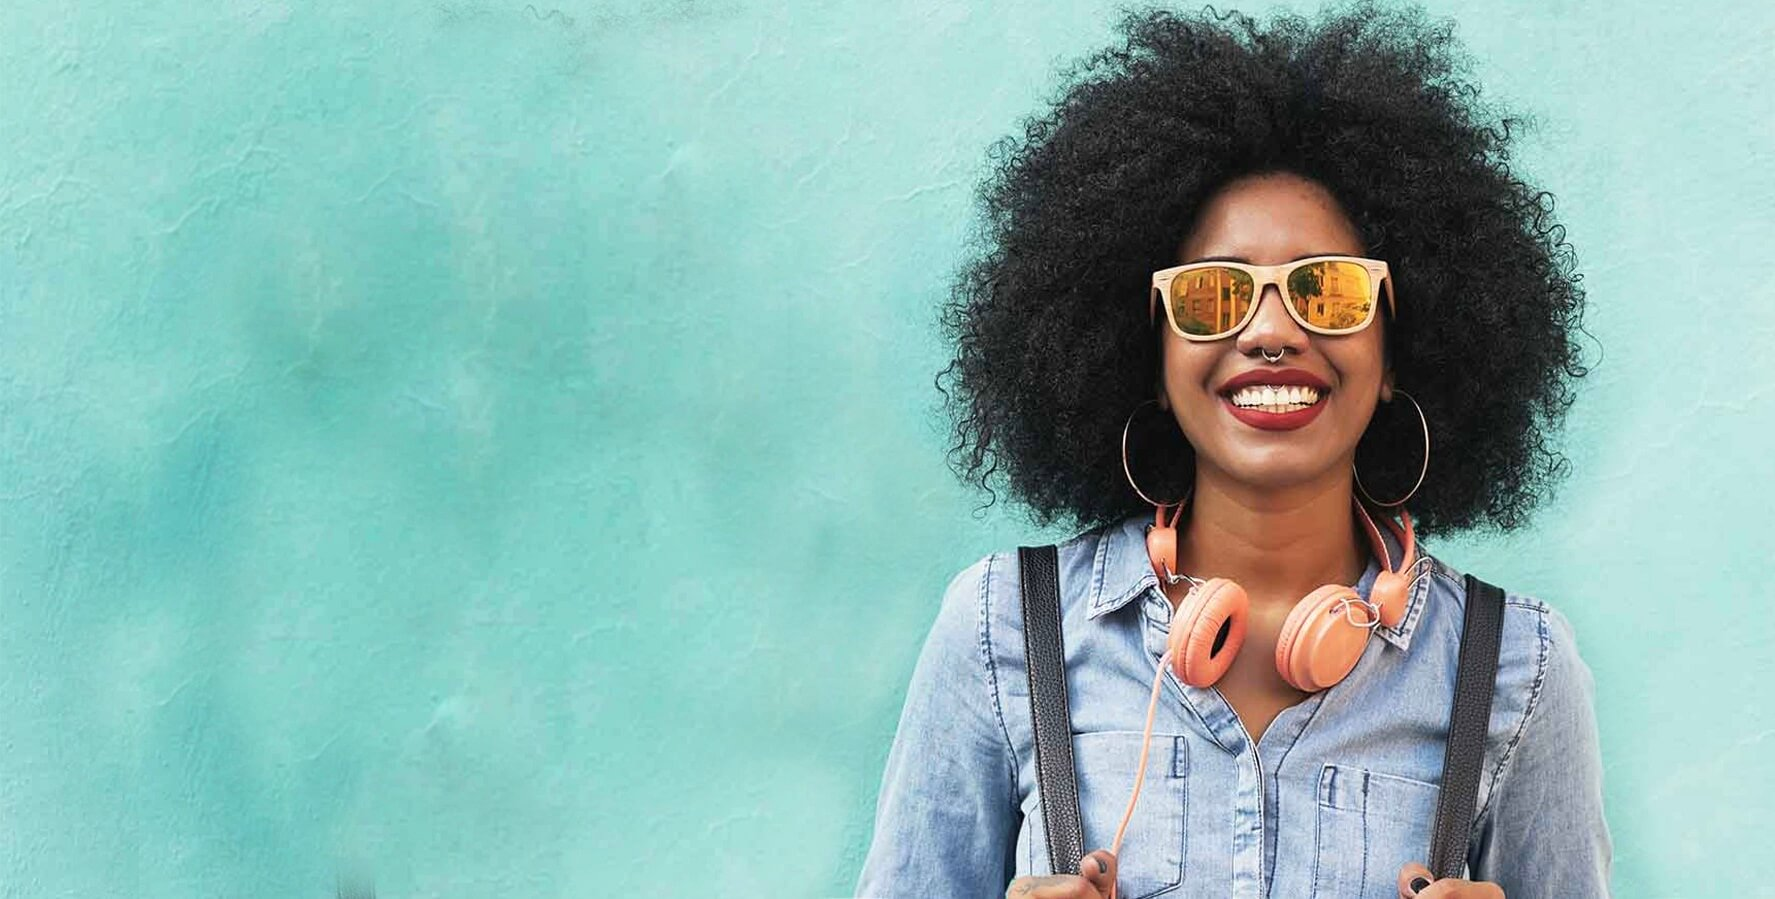 woman in sunglasses with headphones